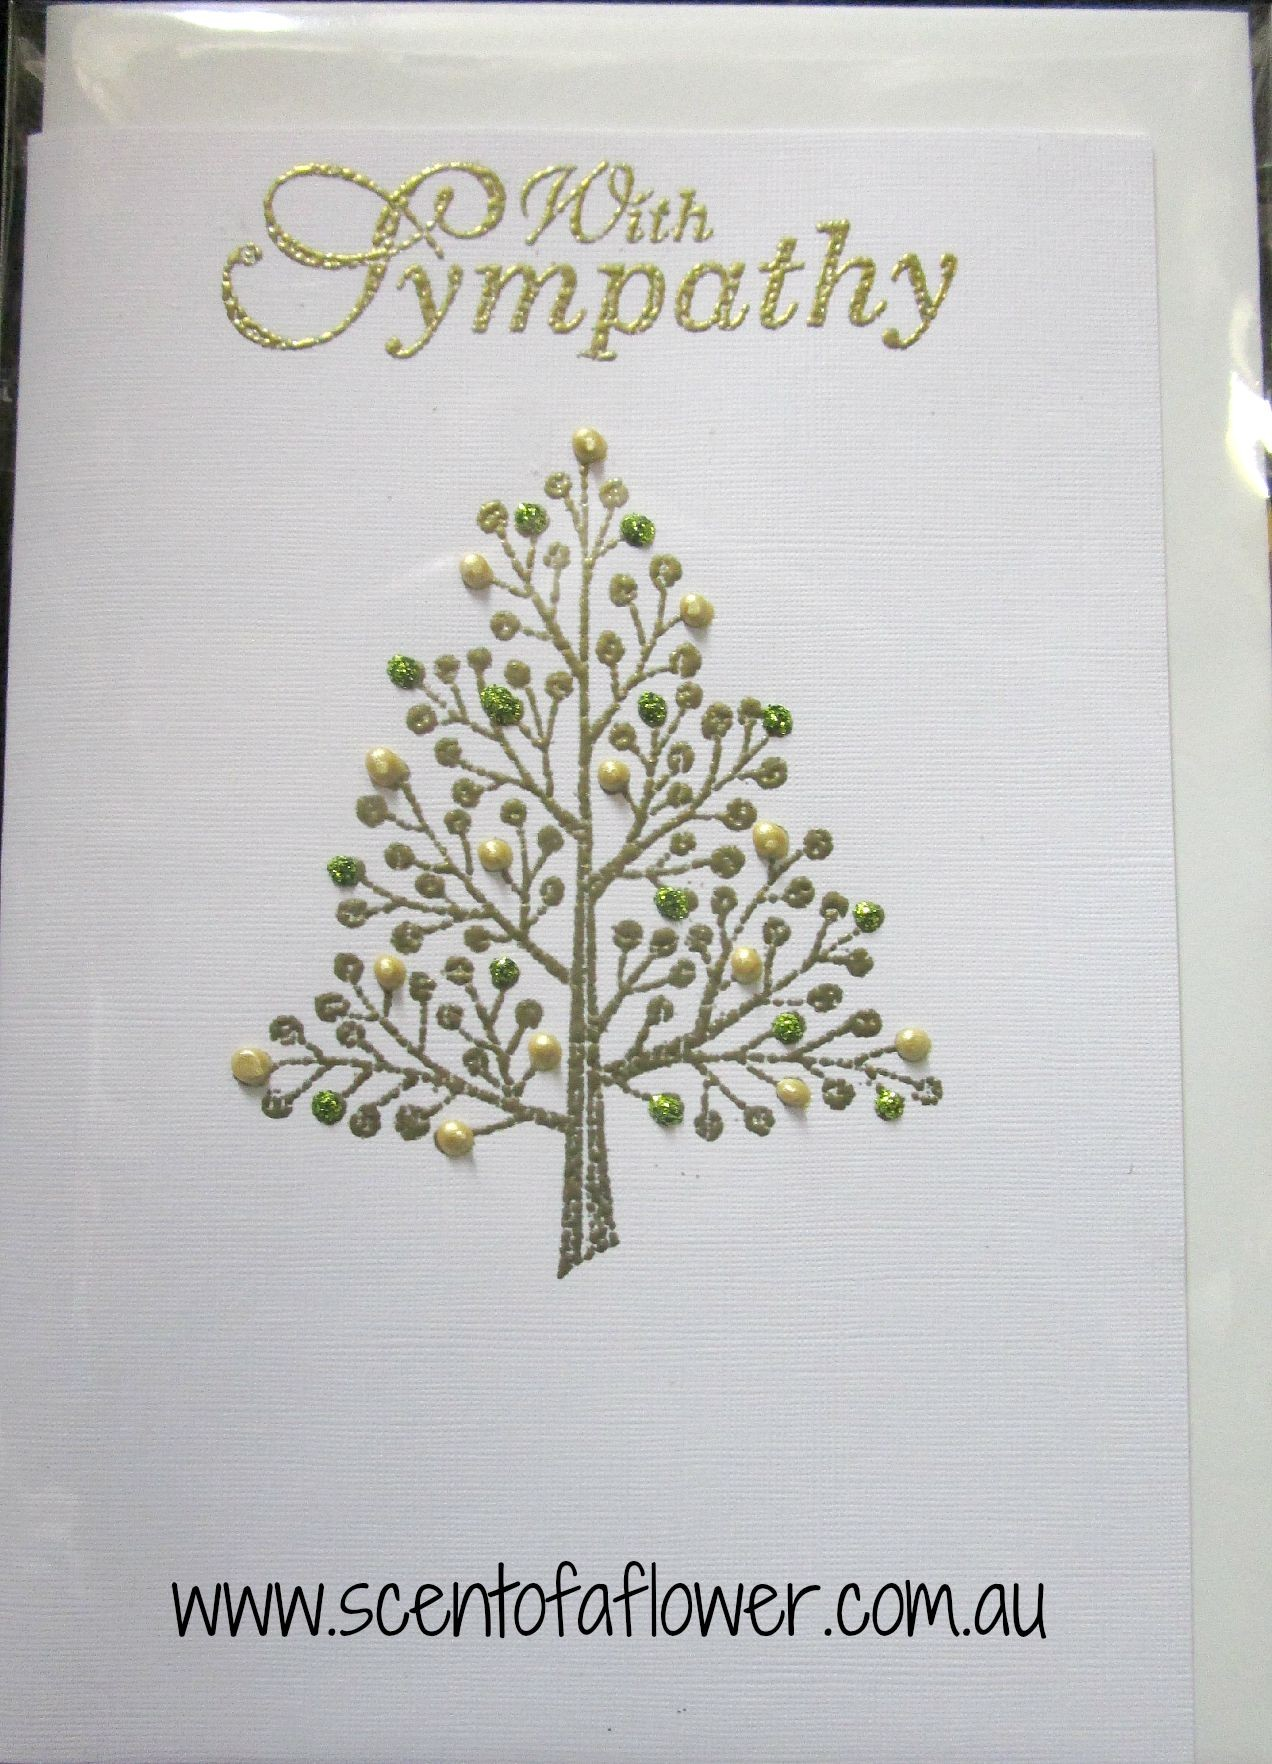 Greeting card sympathy scent of a flower greeting card sympathy m4hsunfo